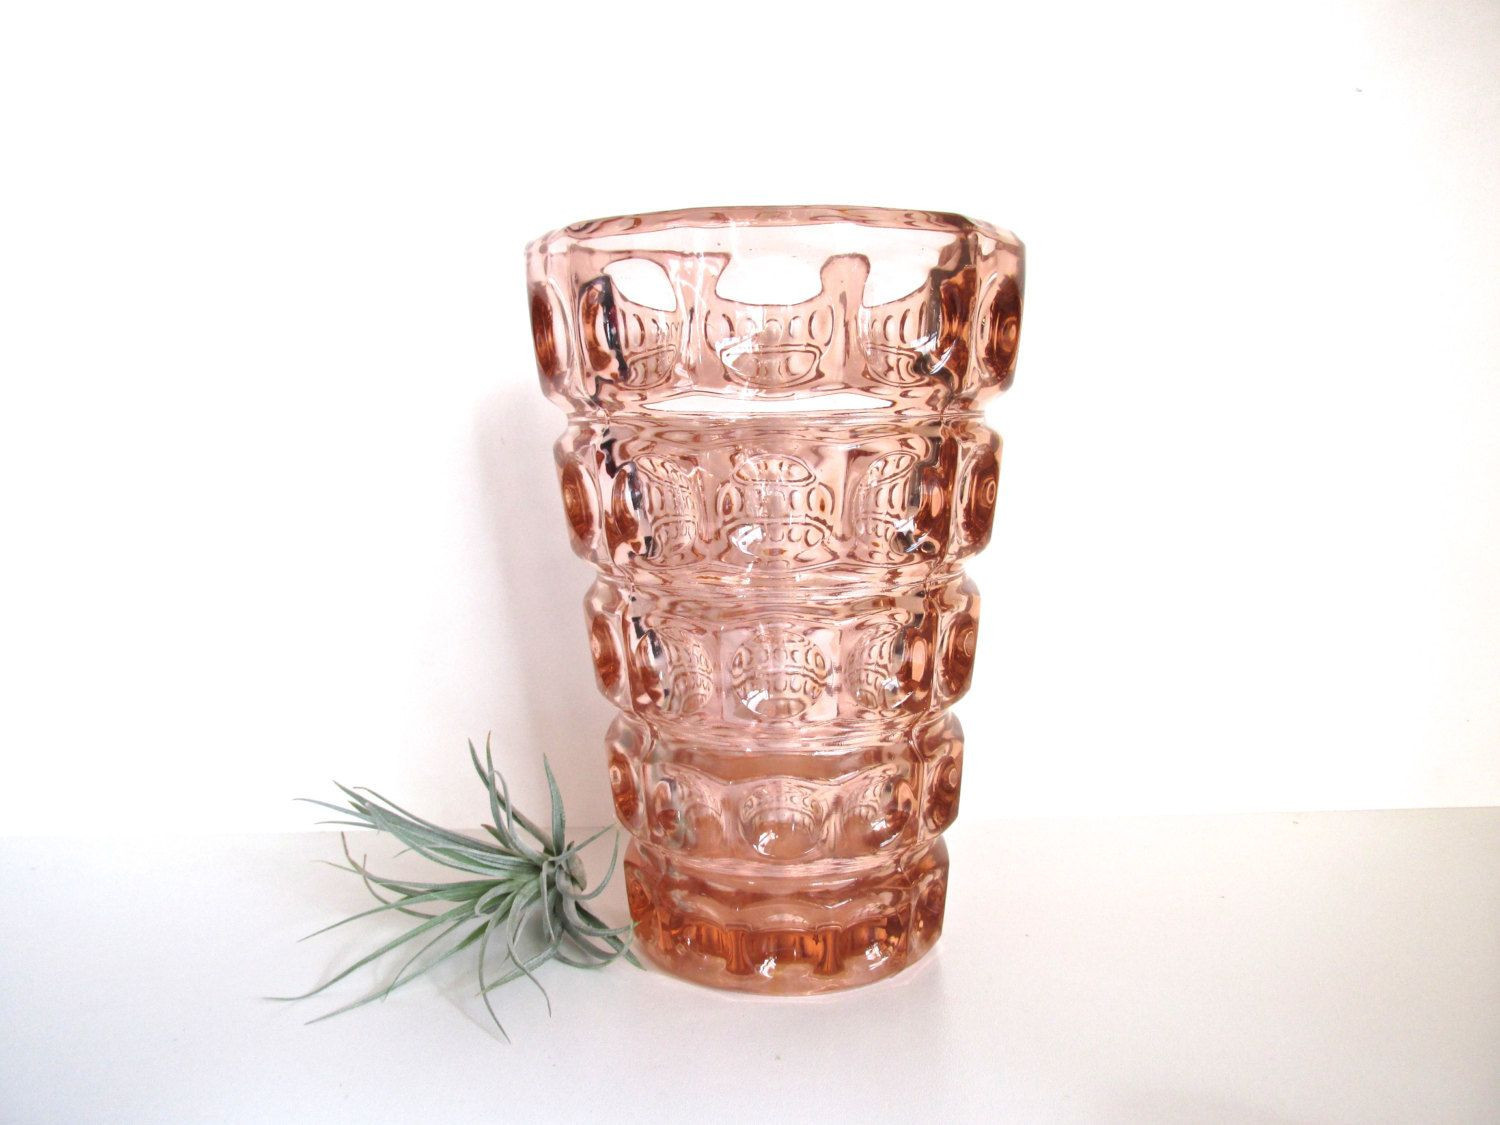 vintage czech glass vase of 17 new large pink vase bogekompresorturkiye com inside large pink vase newest reserve listing for j sklo union pink glass vase czech